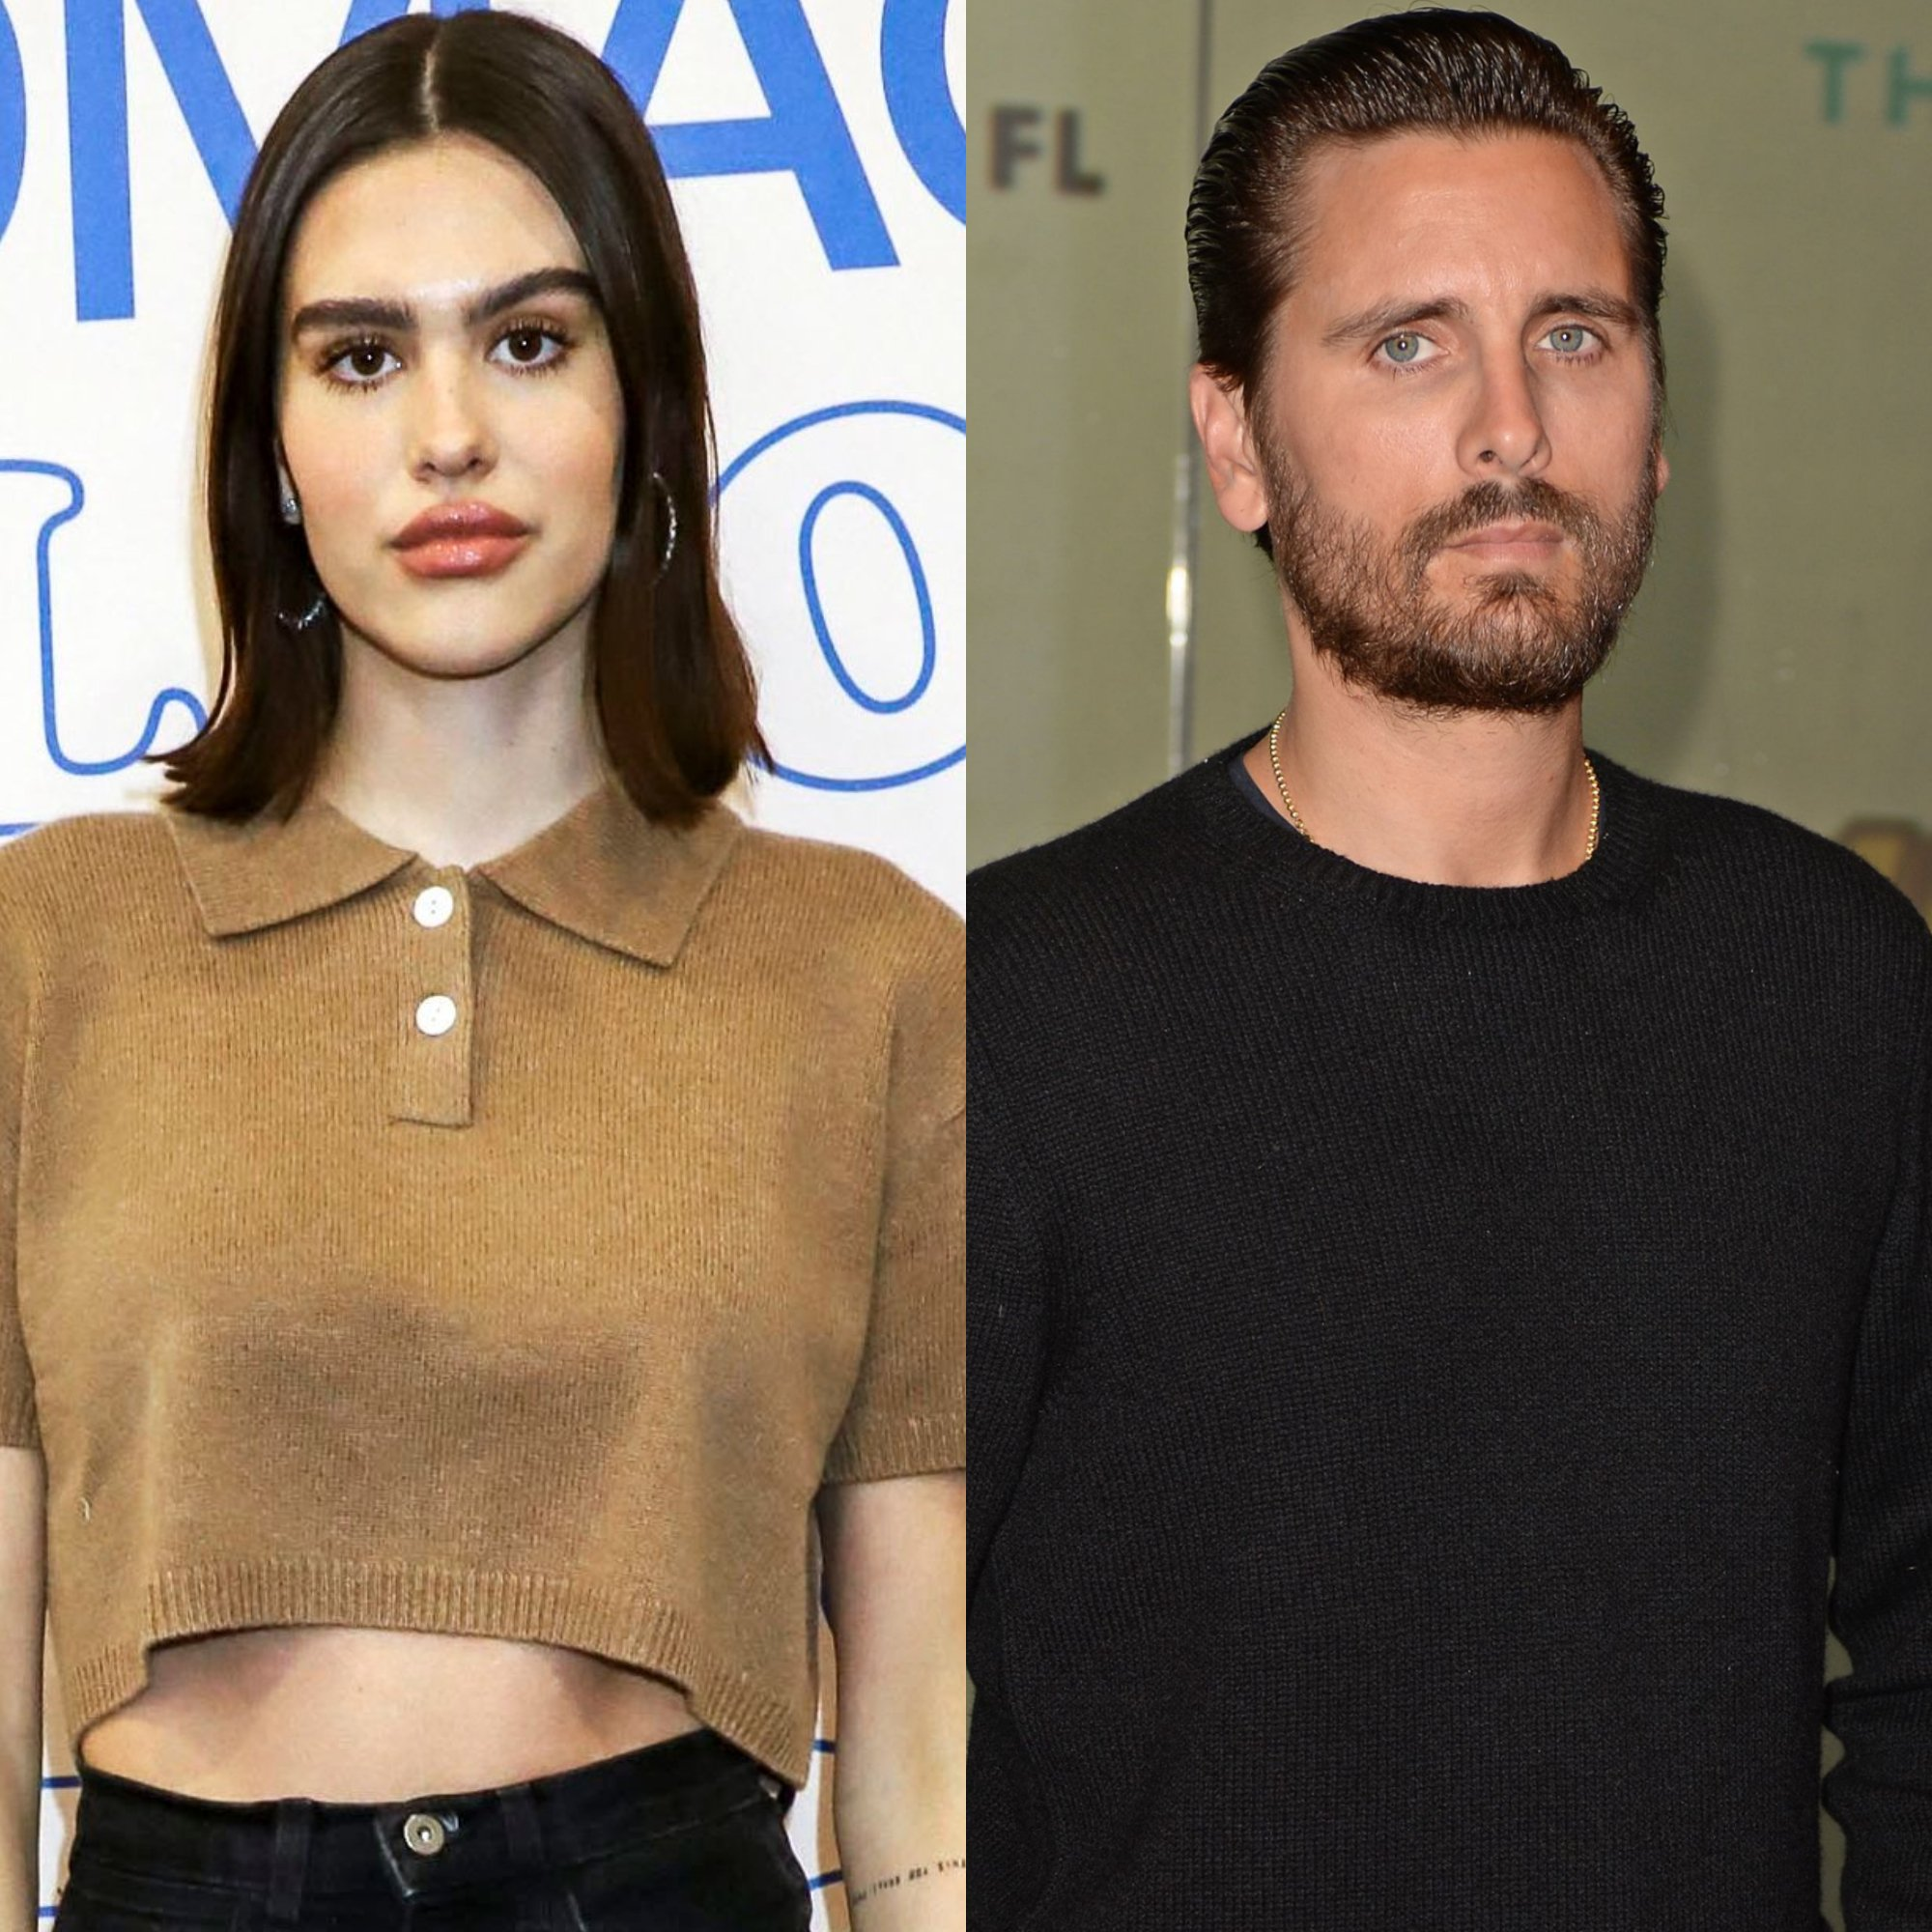 Scott Disick And Amelia Hamlin: Inside Their Relationship Status At This Point – How Serious Is It?